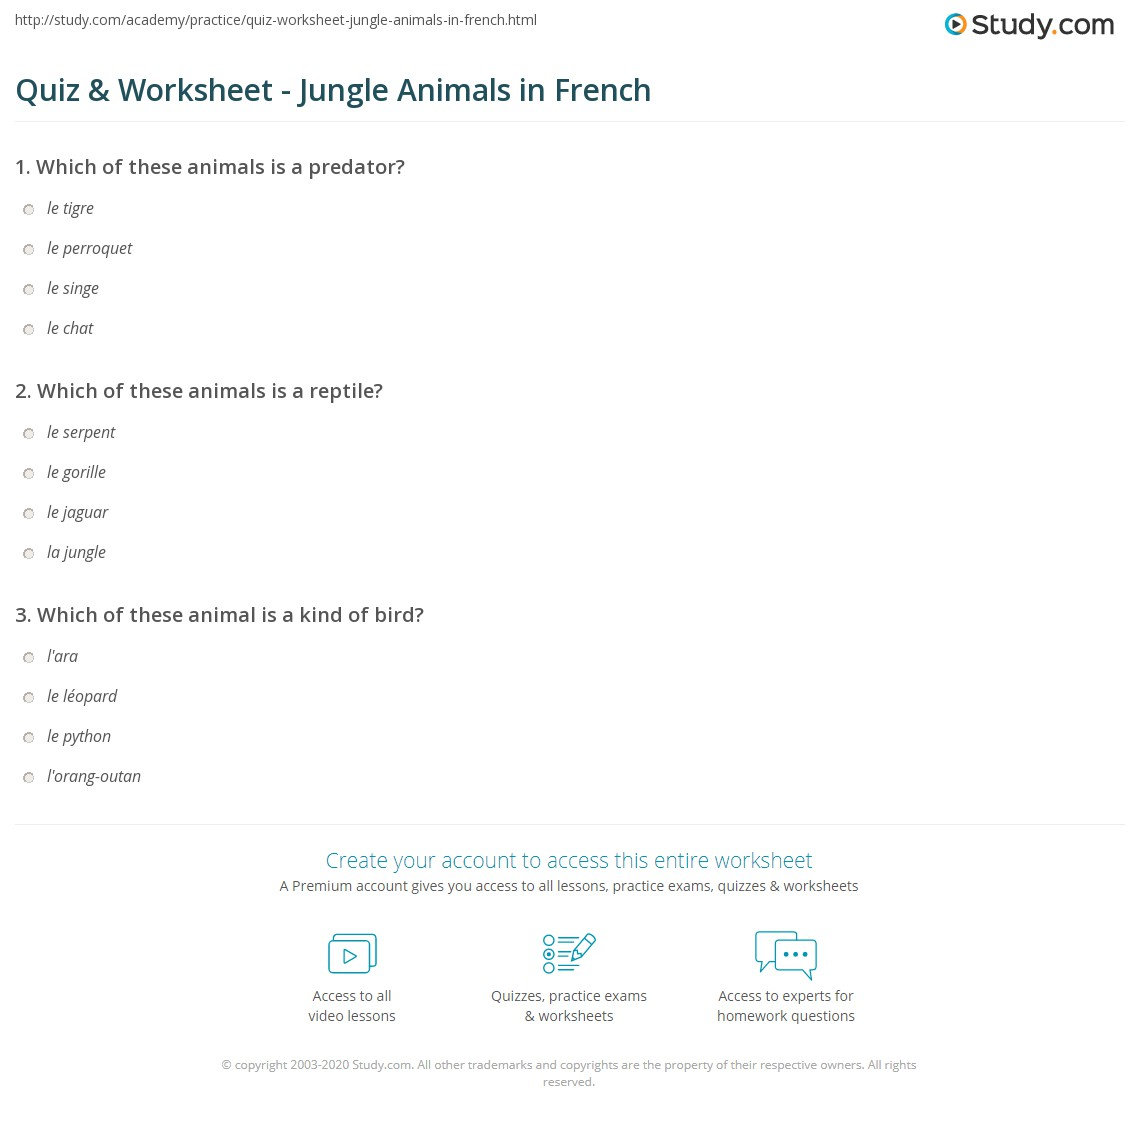 Quiz Worksheet Jungle Animals In French Study